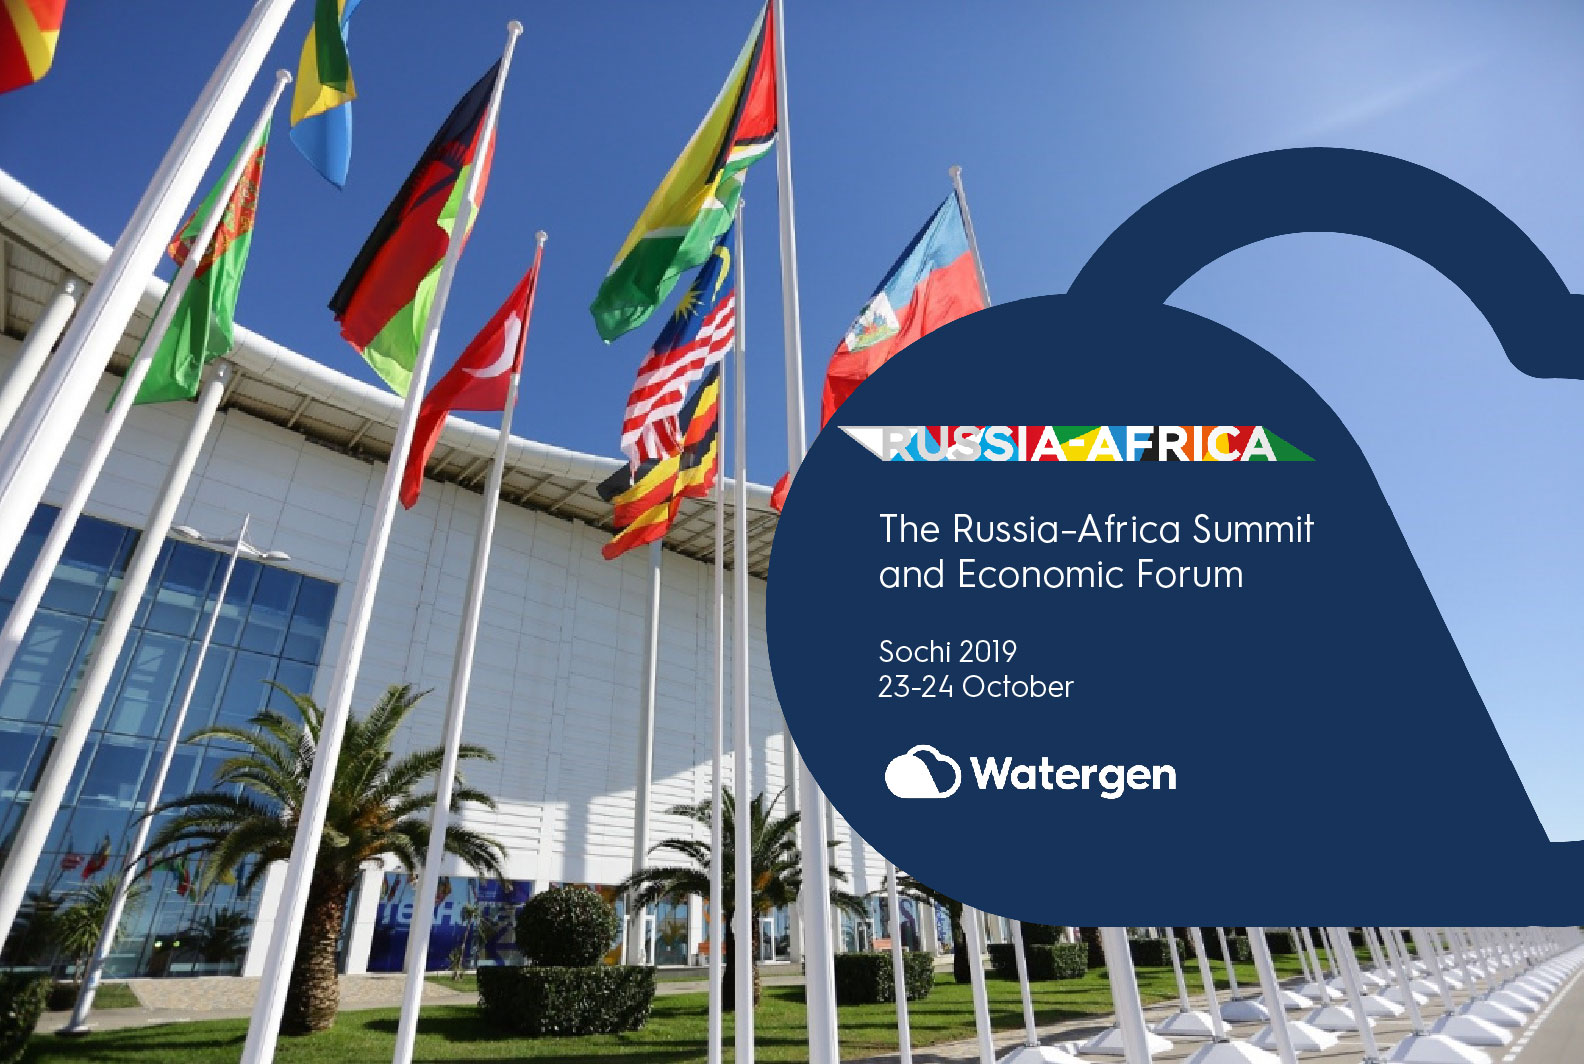 Watergen at the Russia-Africa Summit and Economic Forum